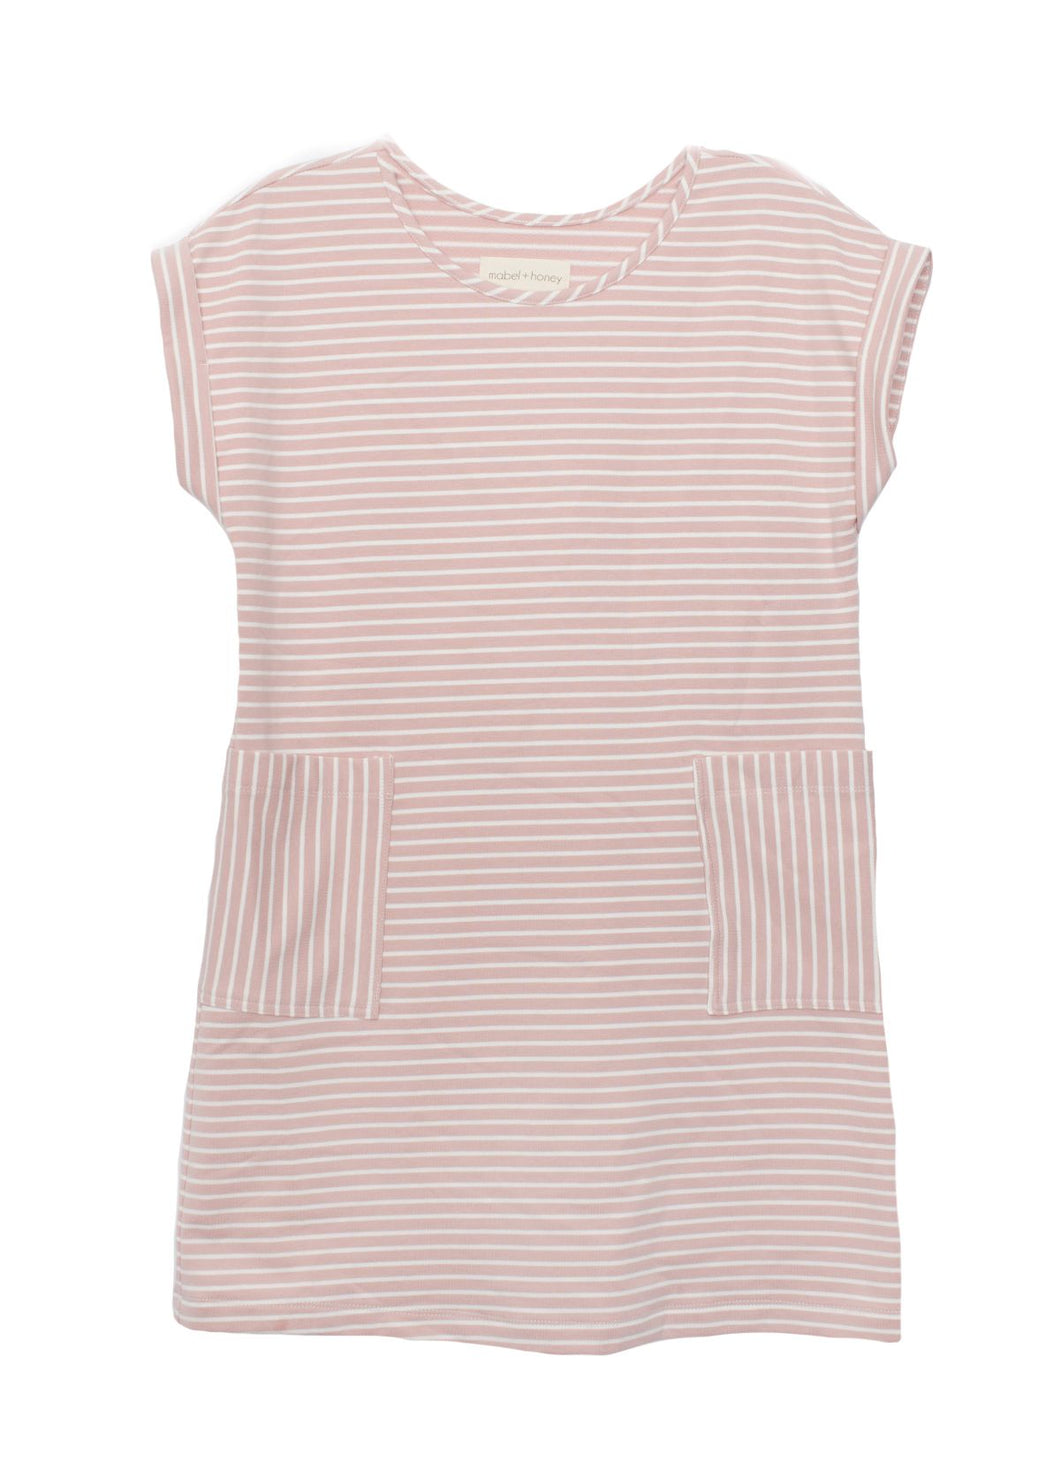 Mabel + Honey Pocket Knit Dress - Pink